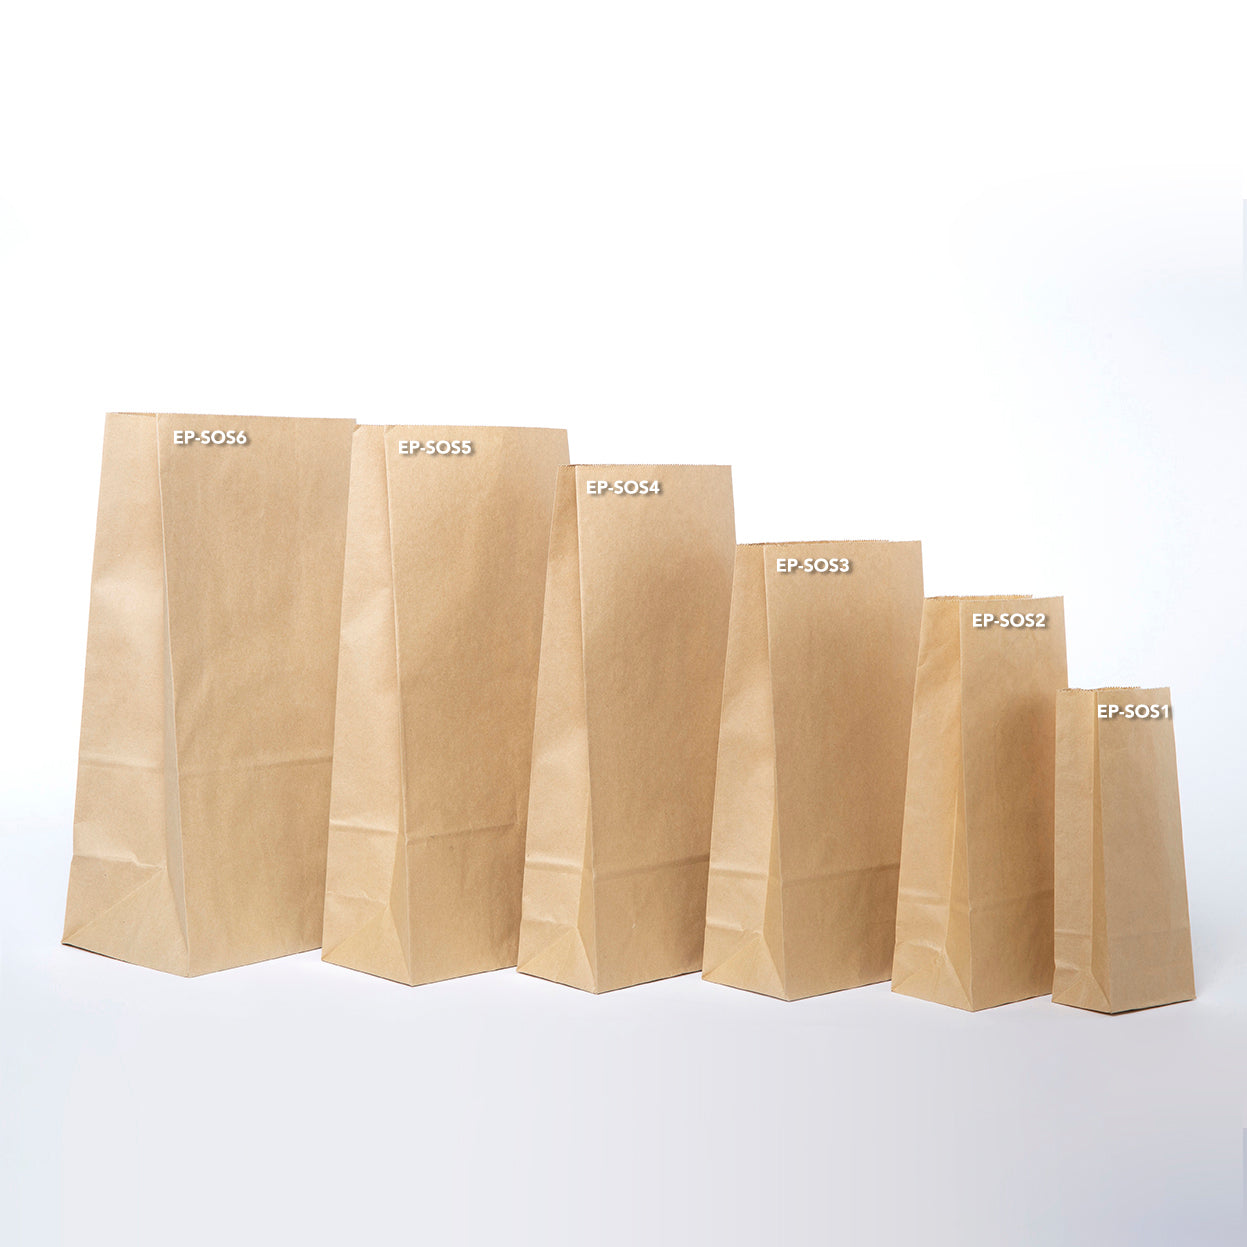 EP-SOS1 XXS Lightweight Paper Bags - Set of 50